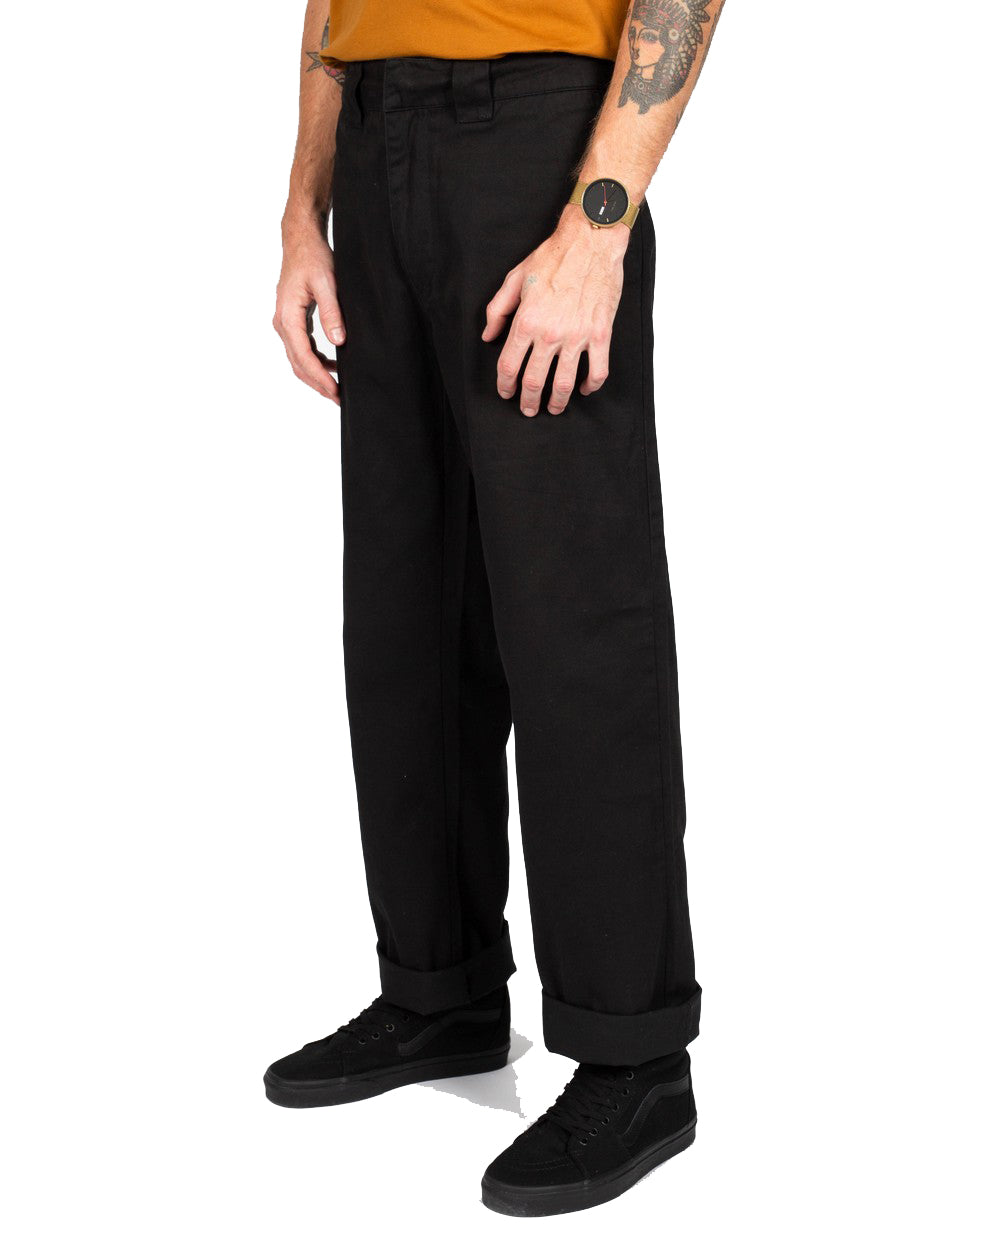 Dickies Medina 874 Mens Pants - Black